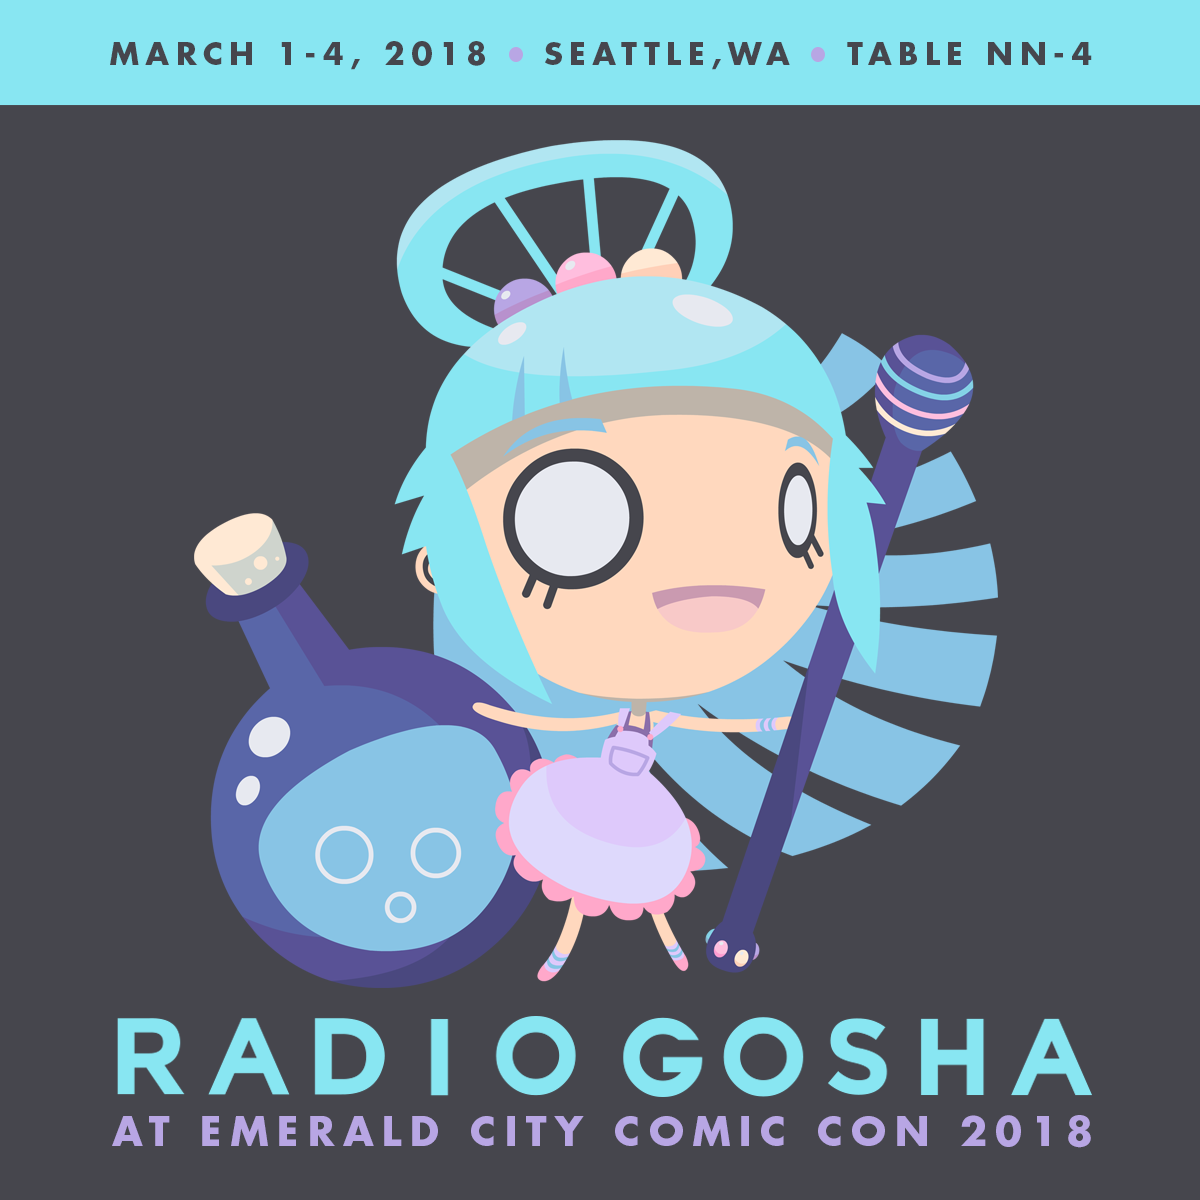 Radio Gosha x Emerald City Comic Con 2018 by GoshaDole